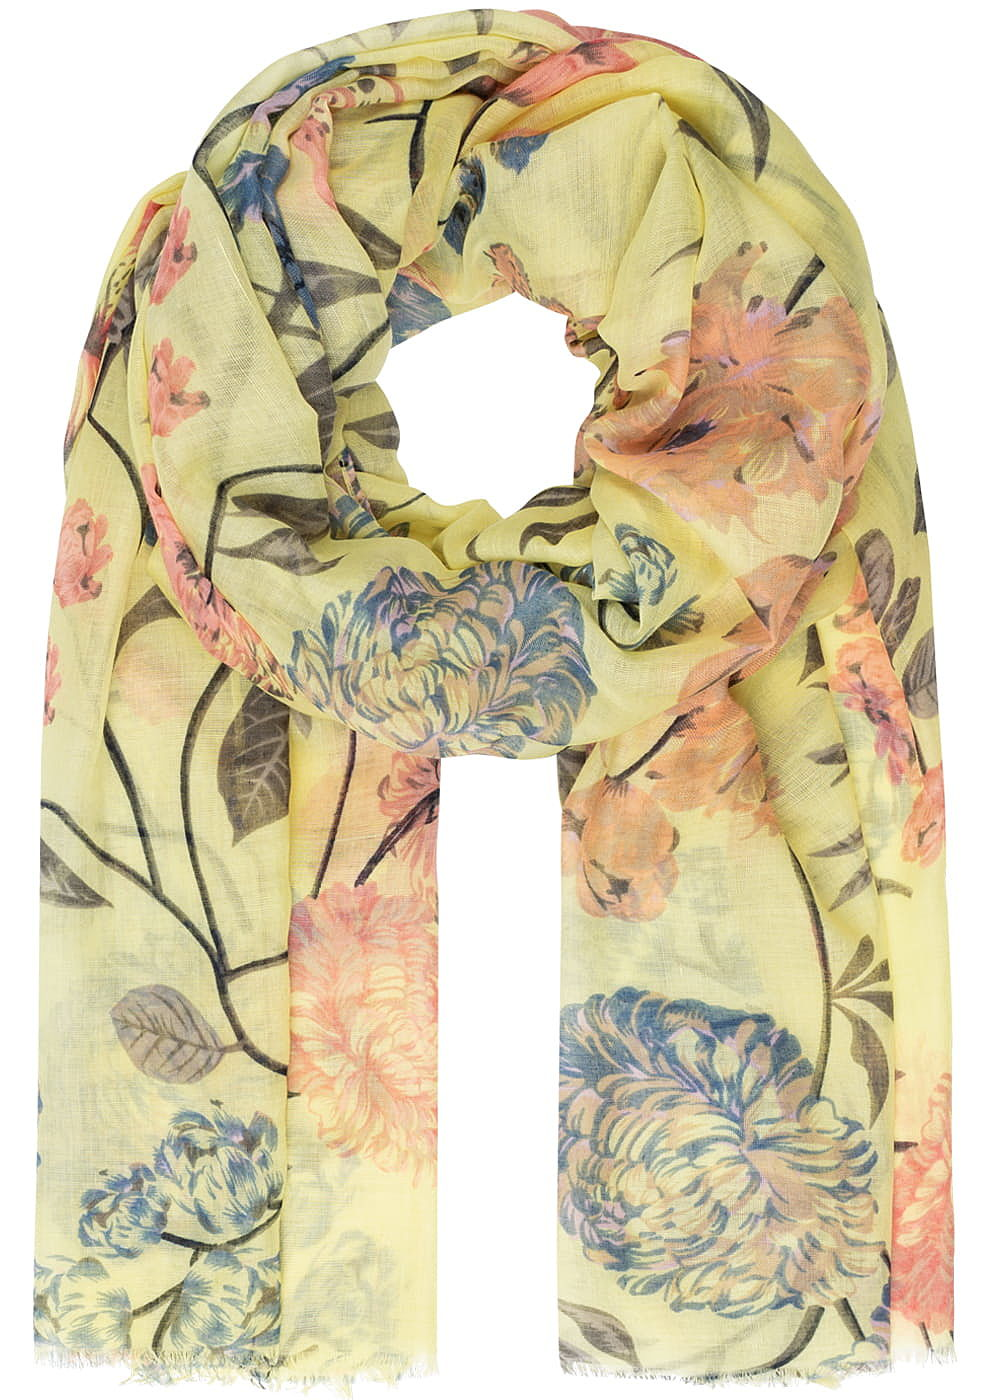 ONLY Damen Weaved Scarf Flower Print popcorn gelb - Art.-Nr.: 19030728-OS-YE